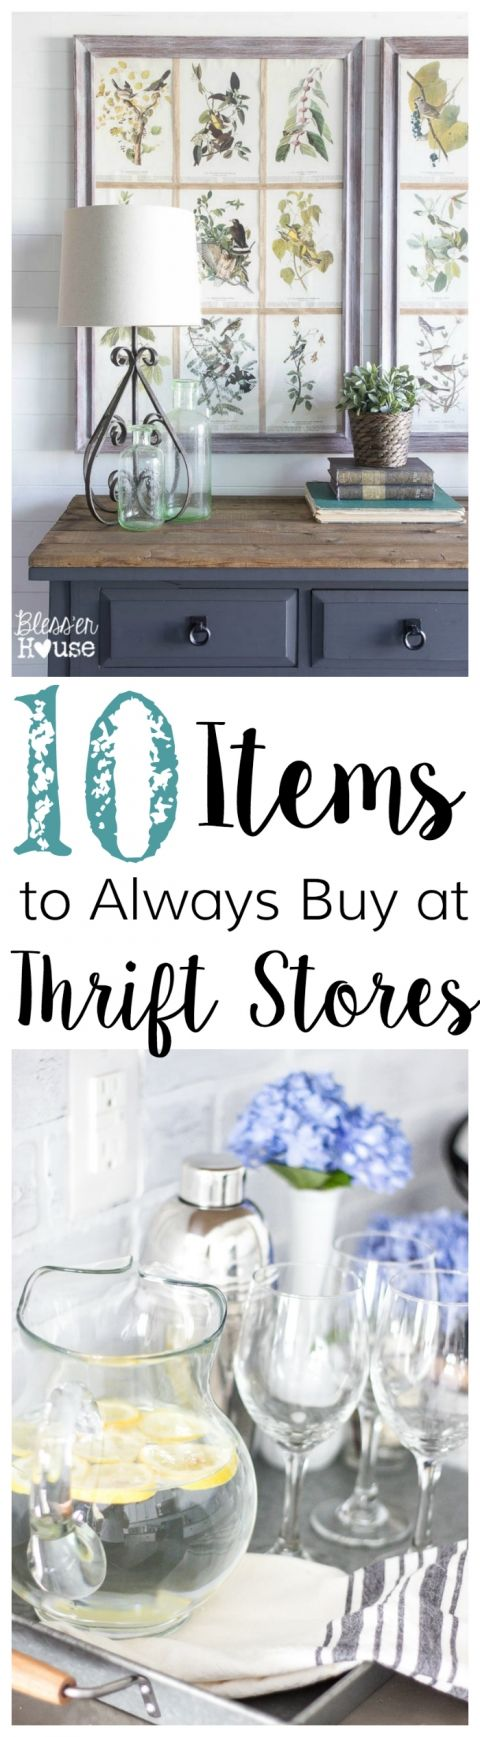 10 Items To Always Buy At Thrift Stores Inexpensive Home Decorthriftingdiy